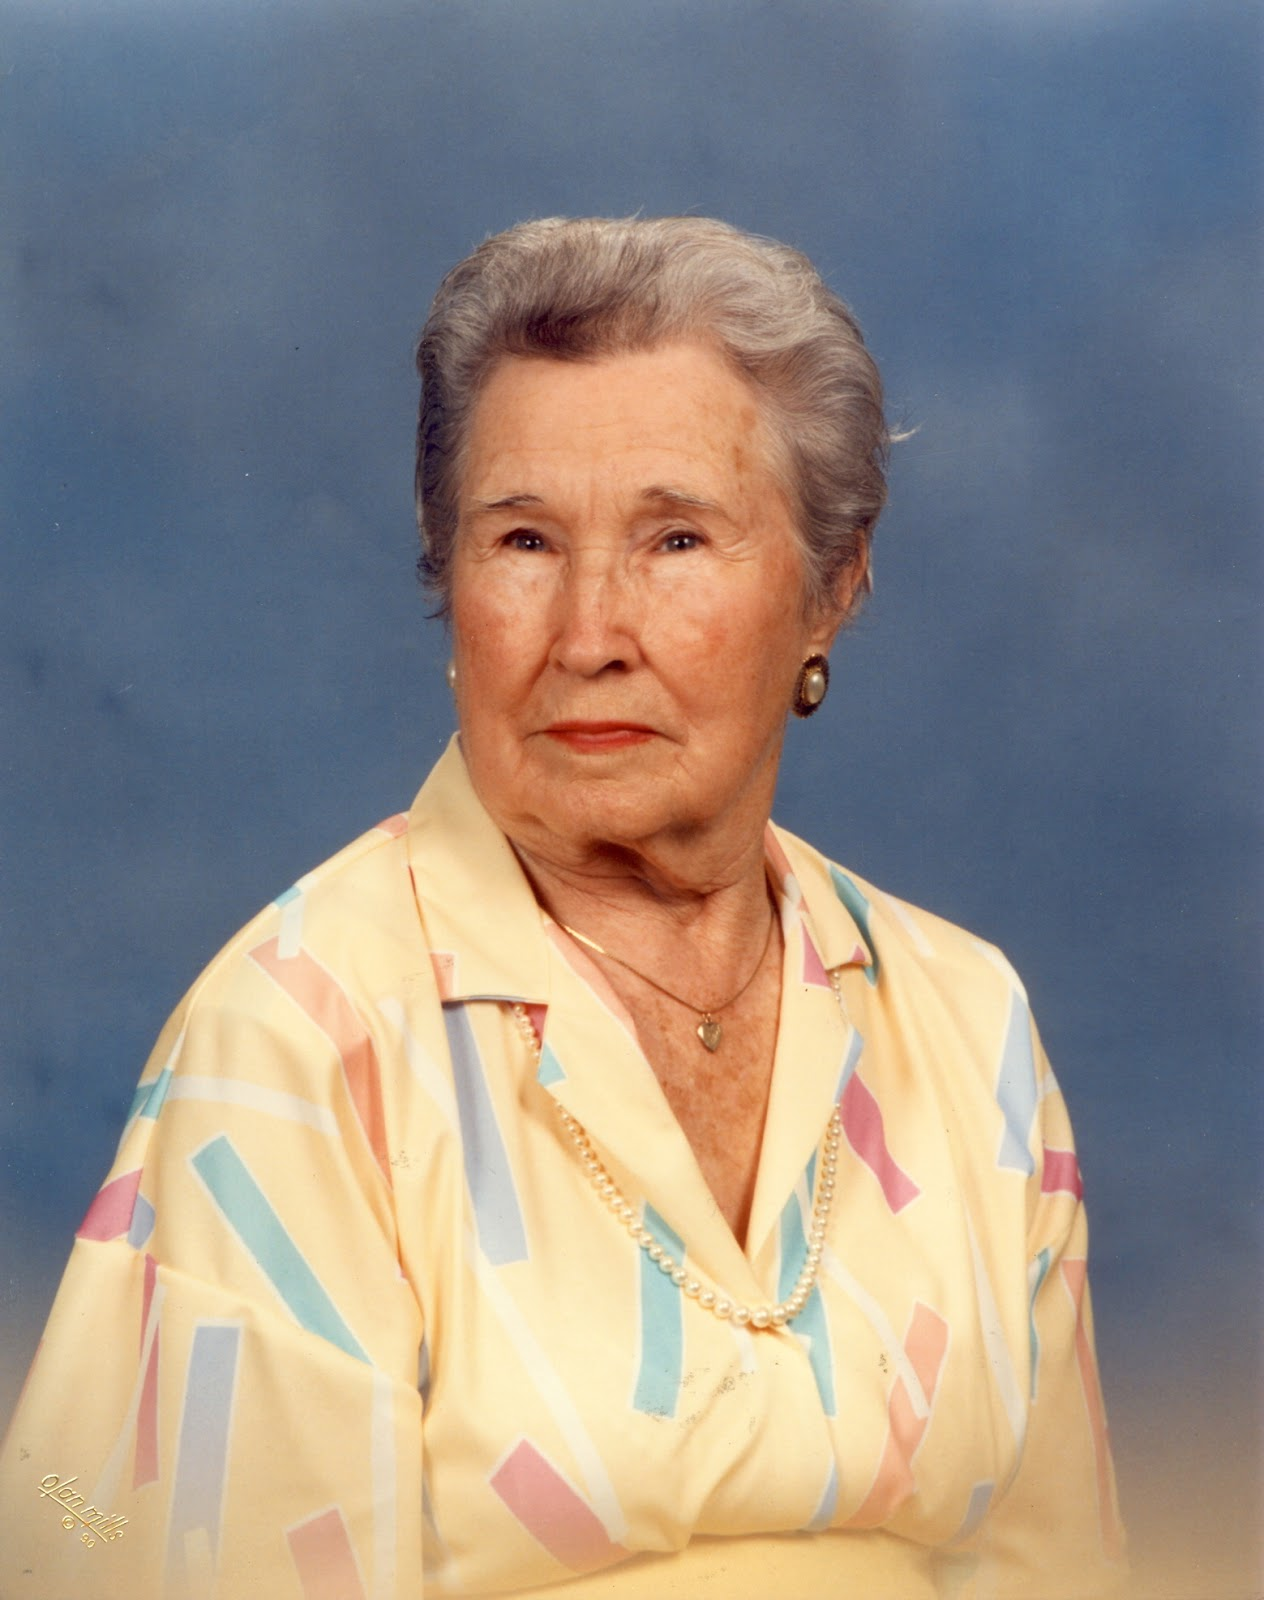 Hazel Zachry; Visitation Sunday 12/02 From 5 8pm At The Funeral Home;  Service Monday 12/03 At 2pm In The Funeral Home Chapel